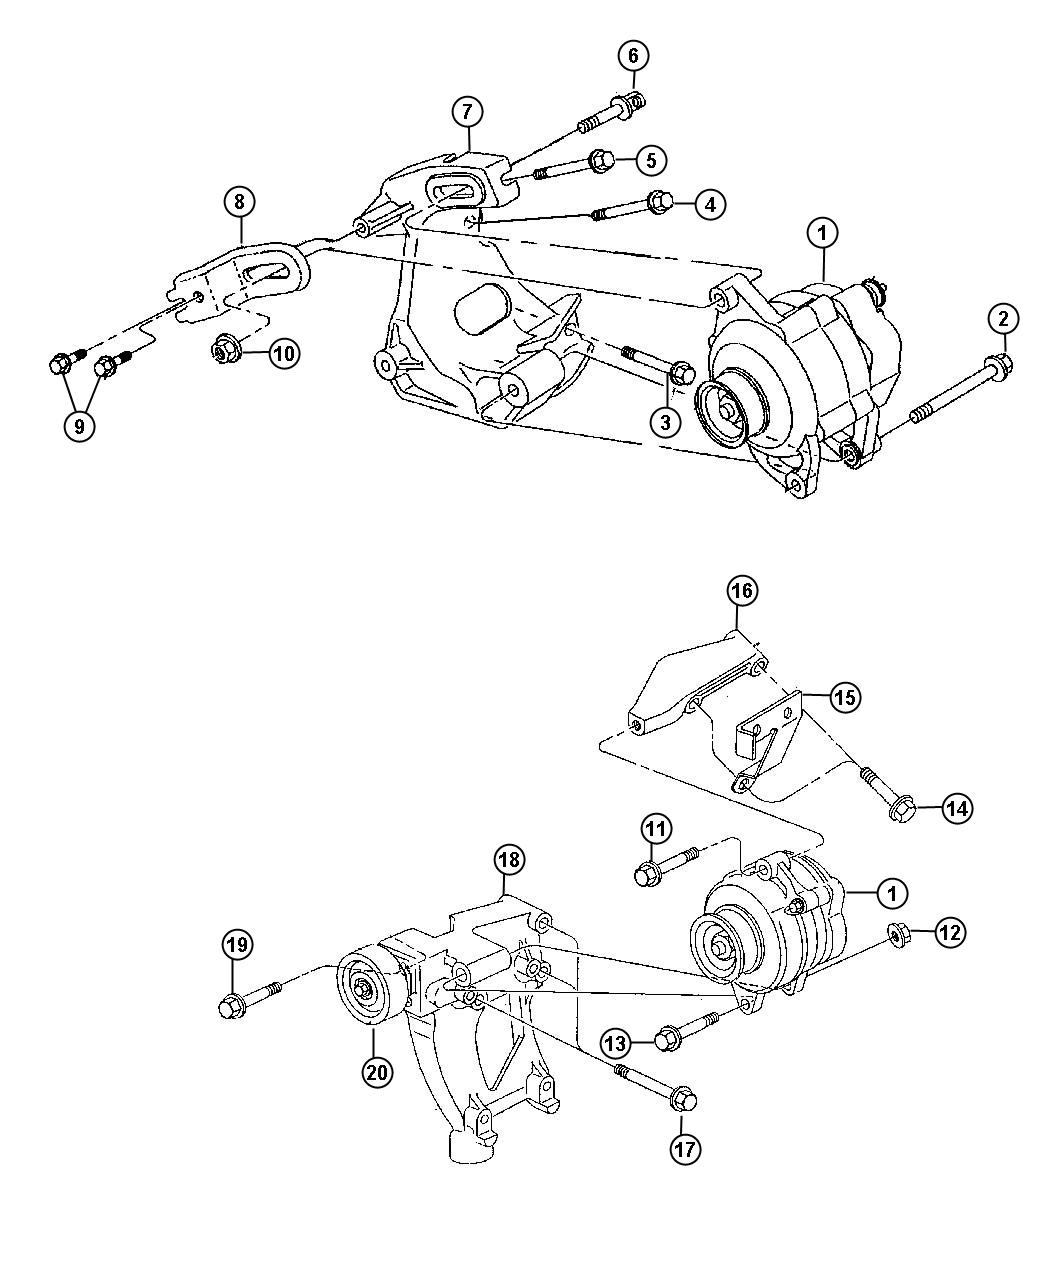 Chrysler Sebring Pulley Diagram